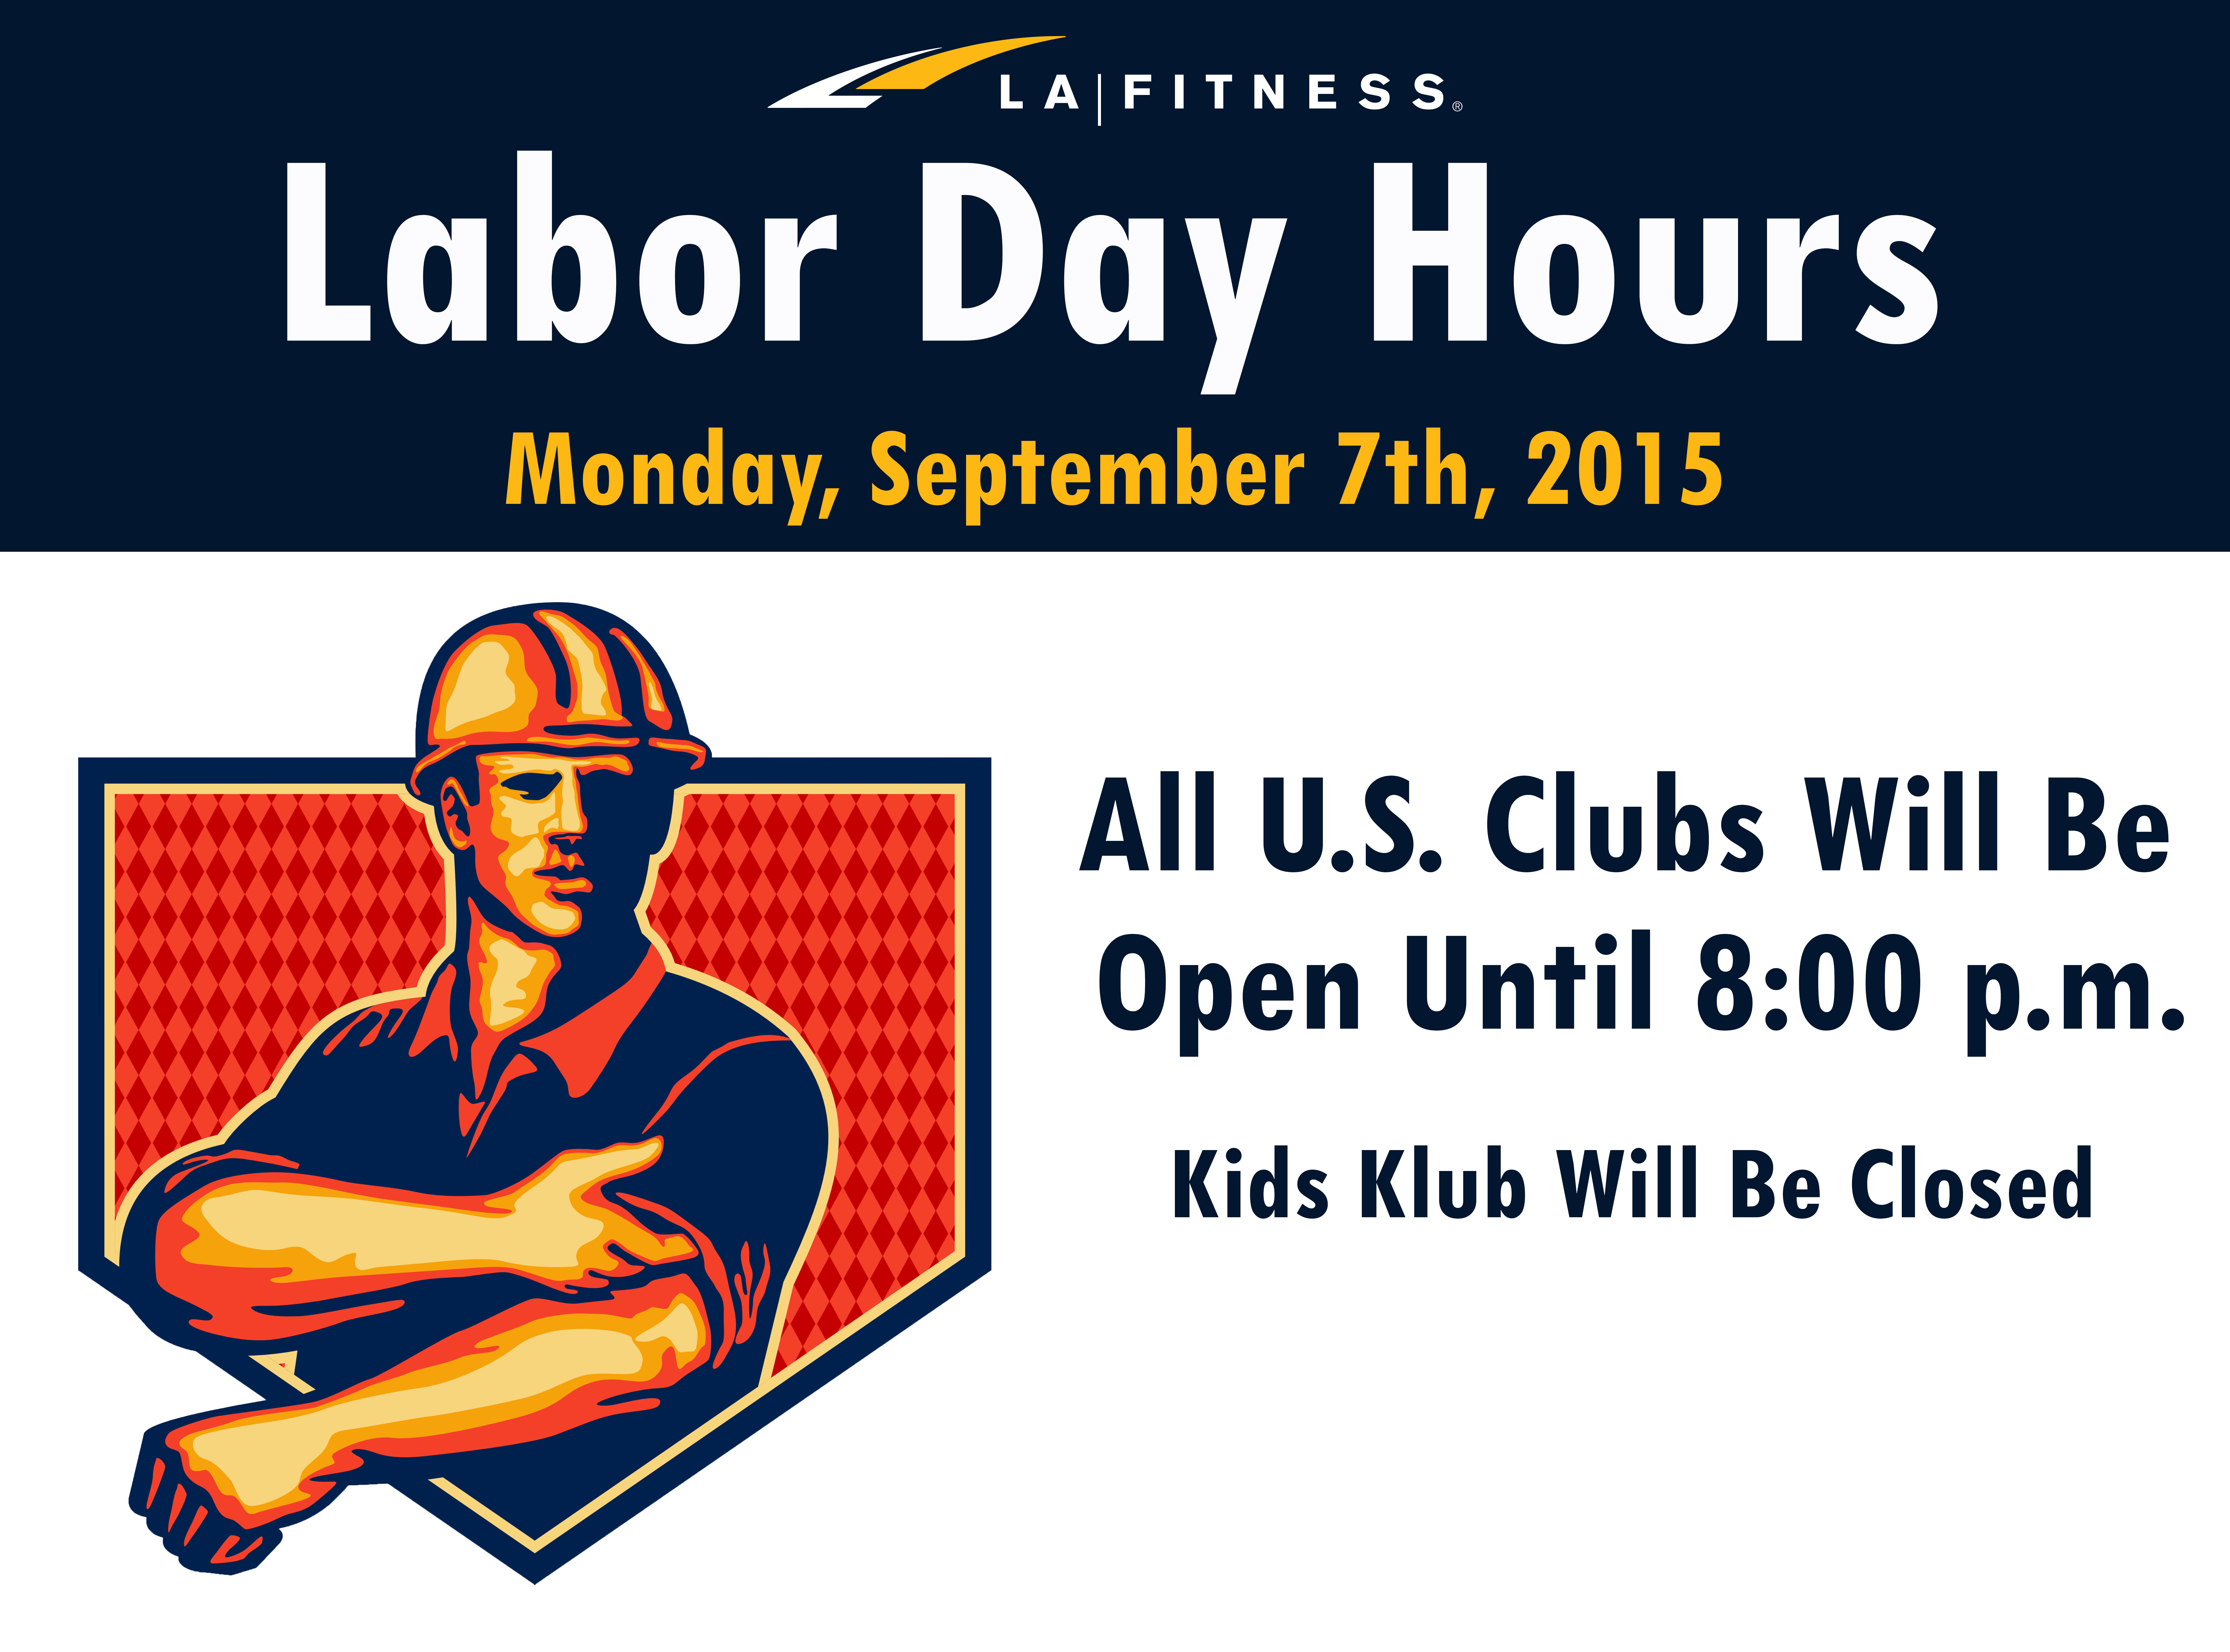 La Fitness Labor Day Hours For Clubs And Kids Klubs 2015 La